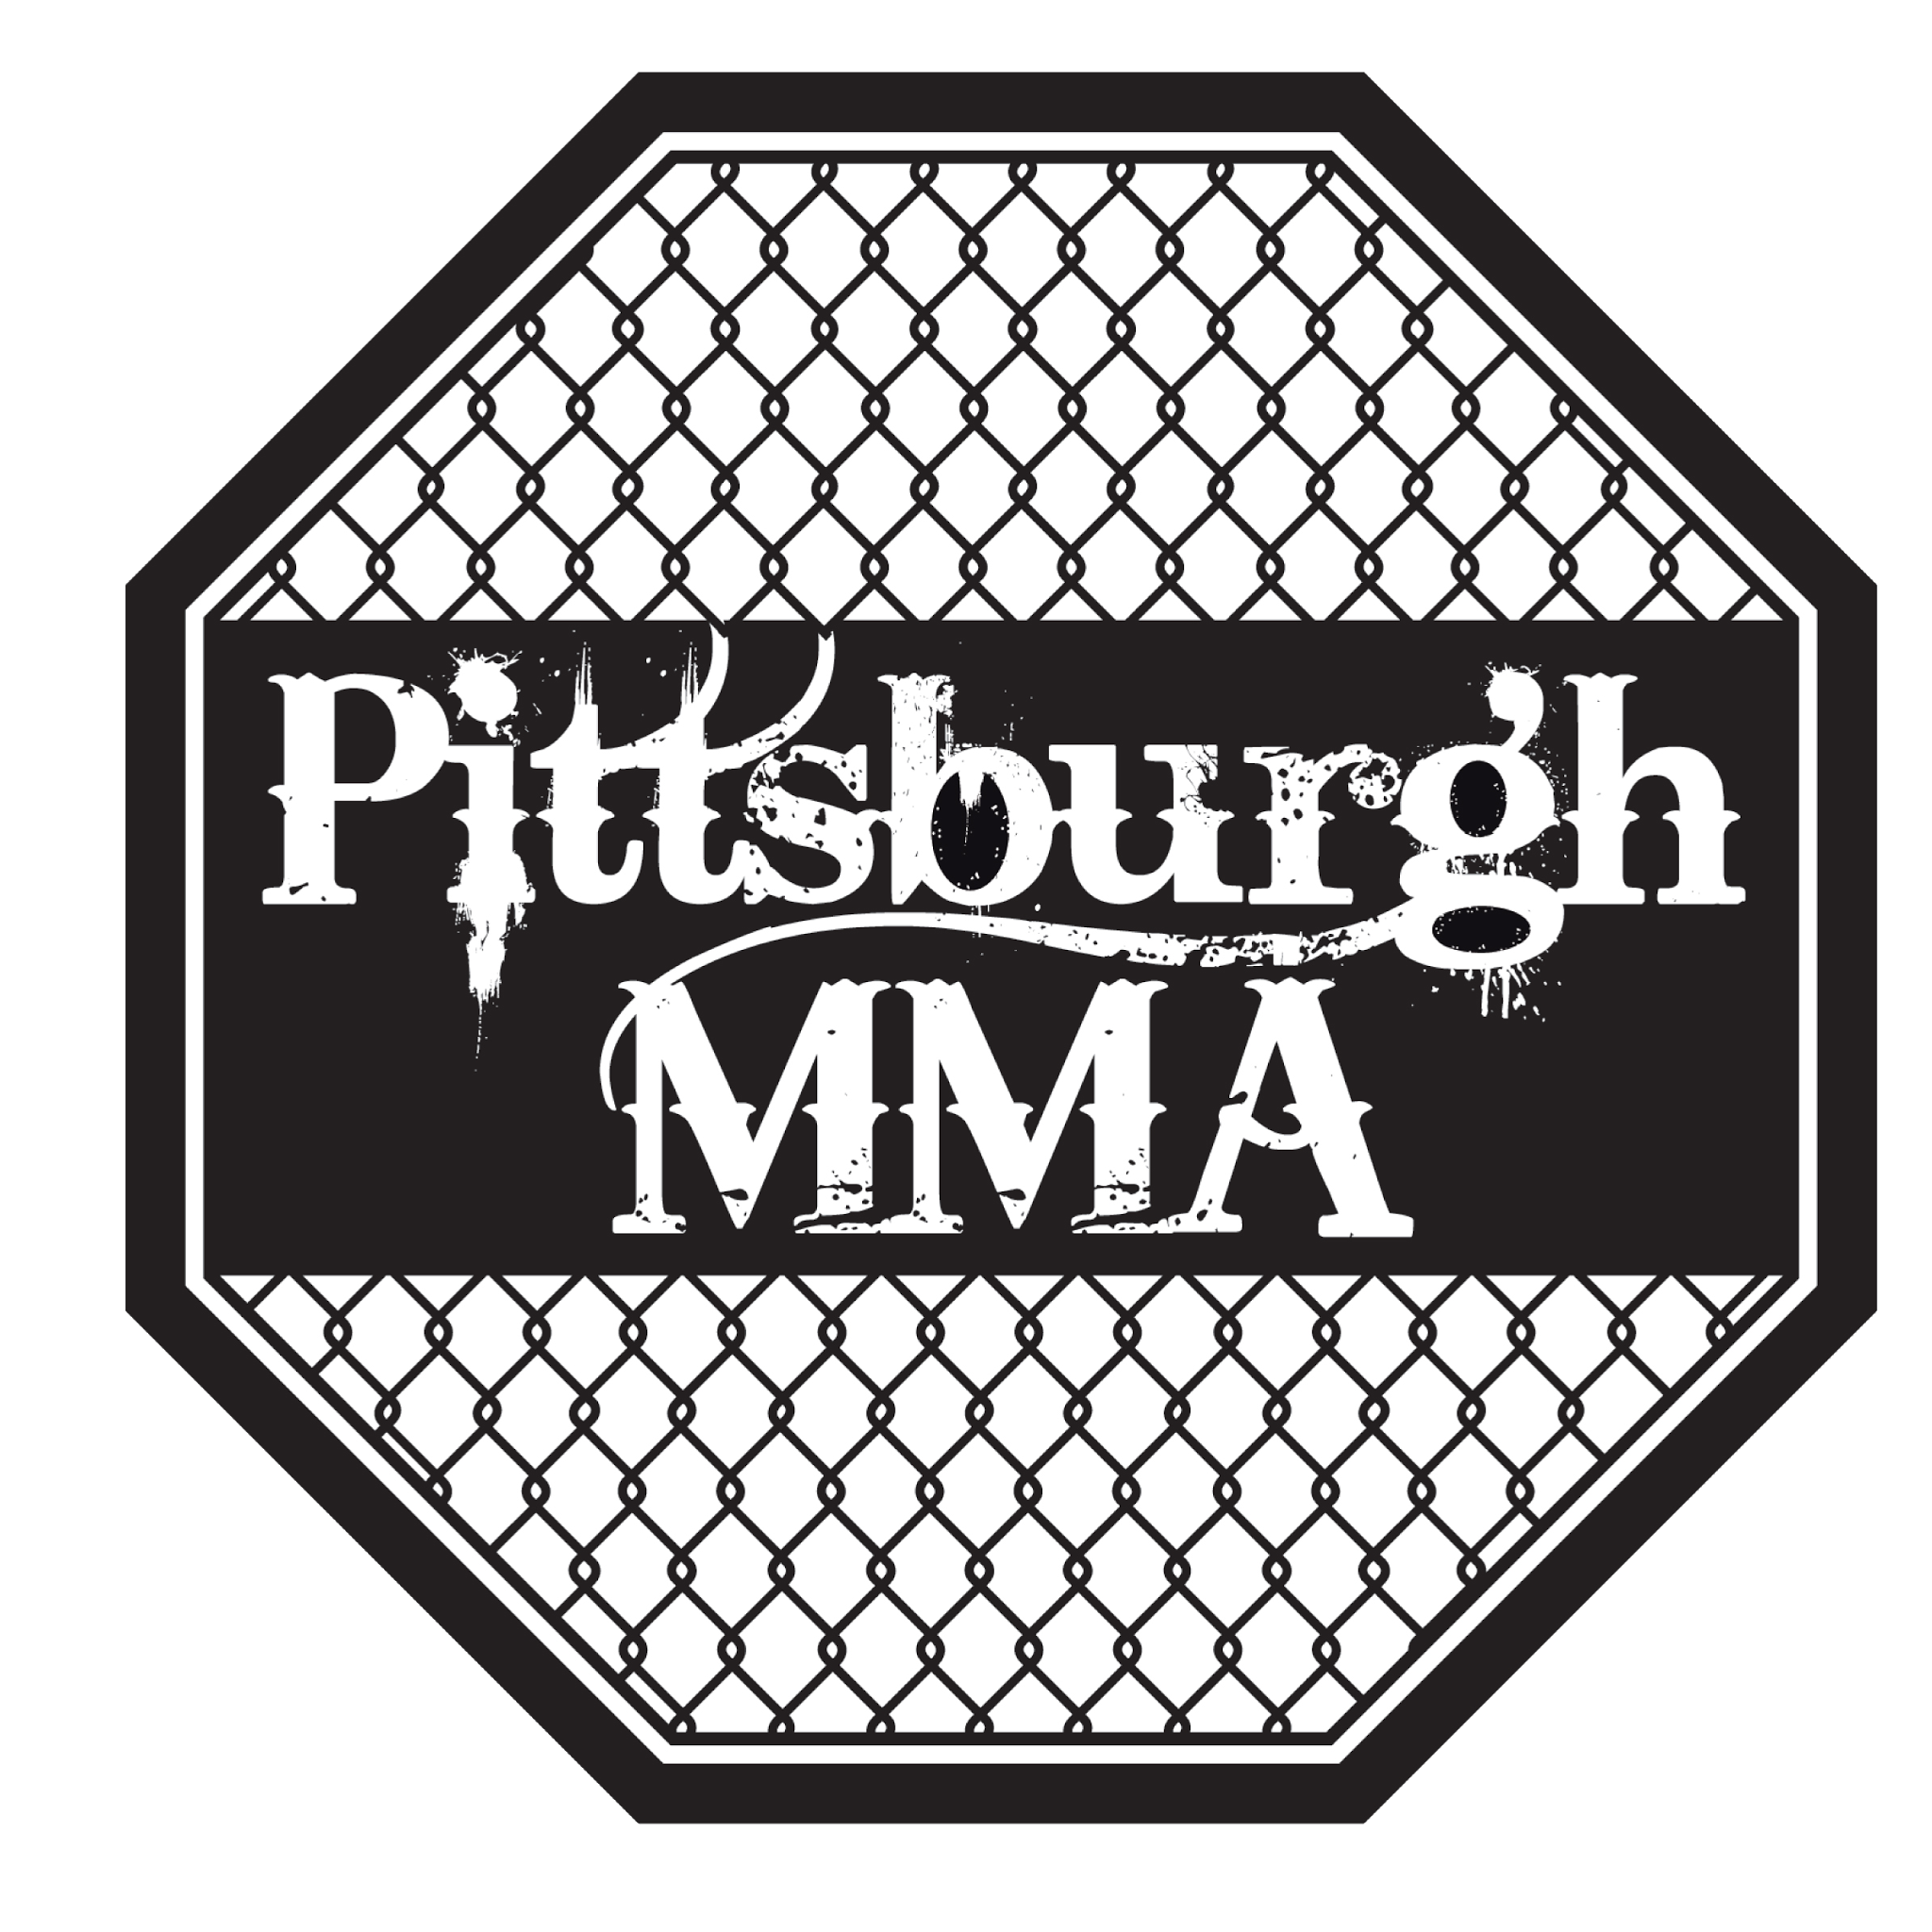 Mma cage png. Pittsburgh google